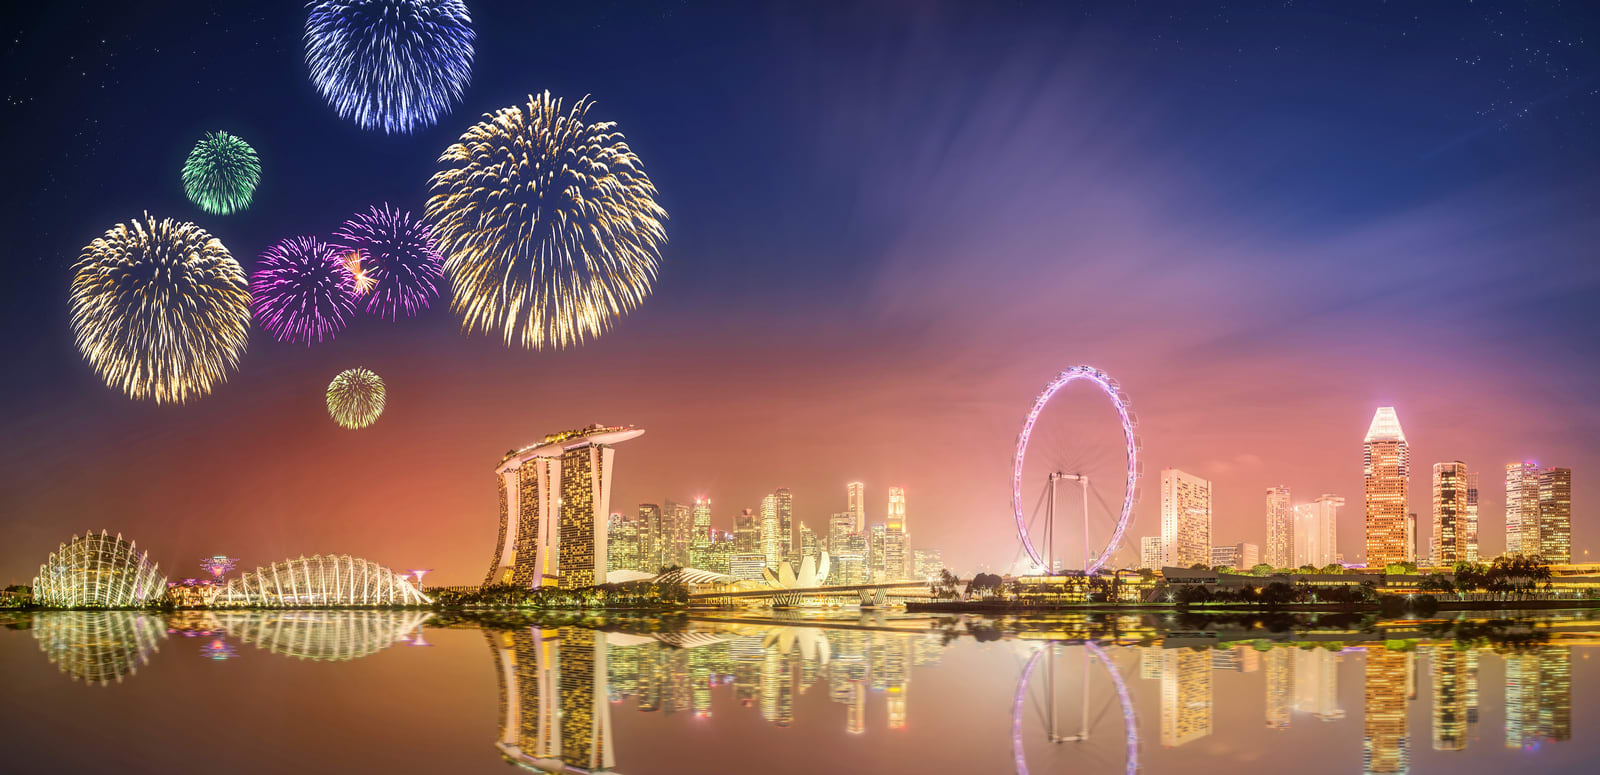 Singapore New Year 2020 - Things to Do, Fireworks, Parties